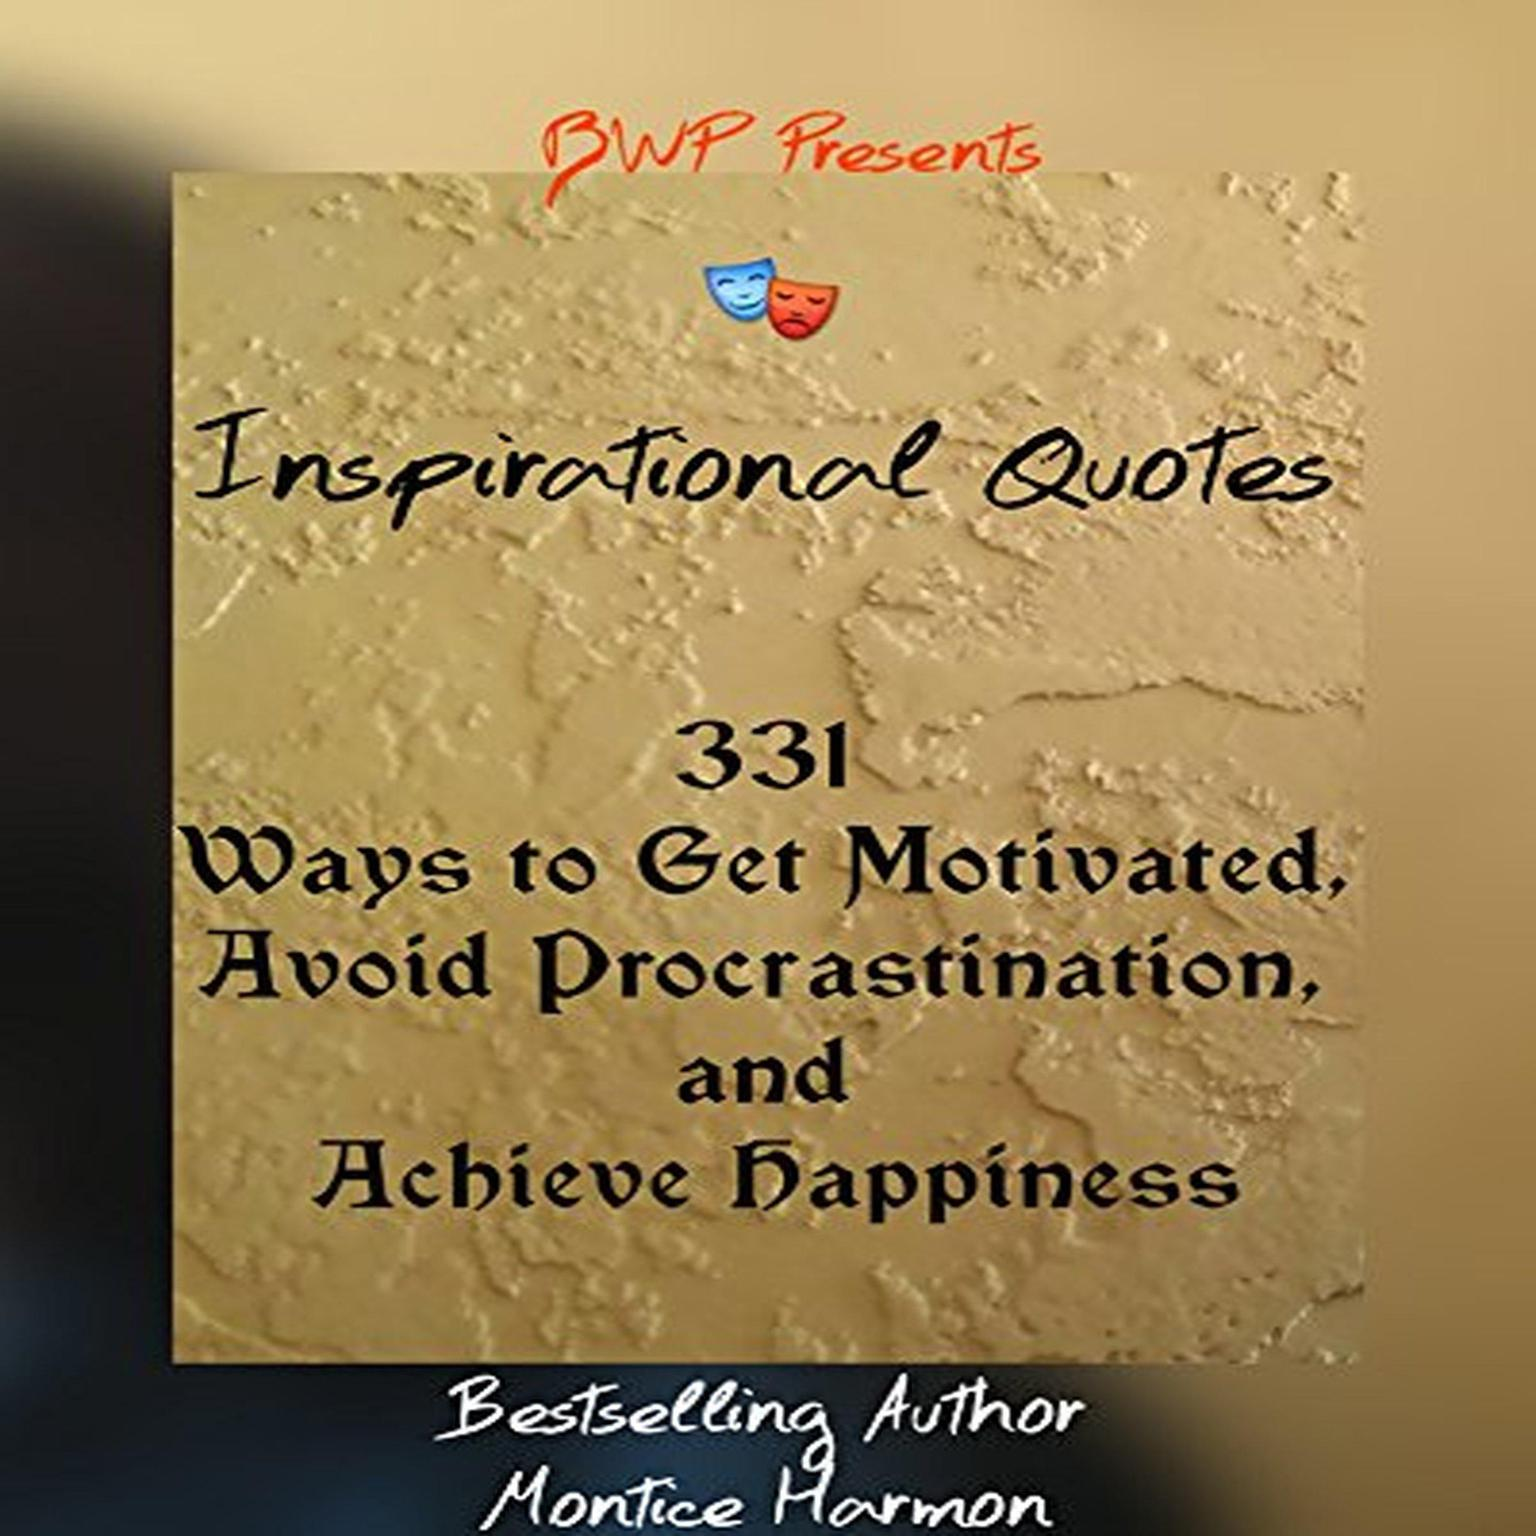 Printable Inspirational Quotes: Ways to Get Motivated, Avoid Procrastination, and Achieve Happiness: Special Edition Vol. 1 Audiobook Cover Art